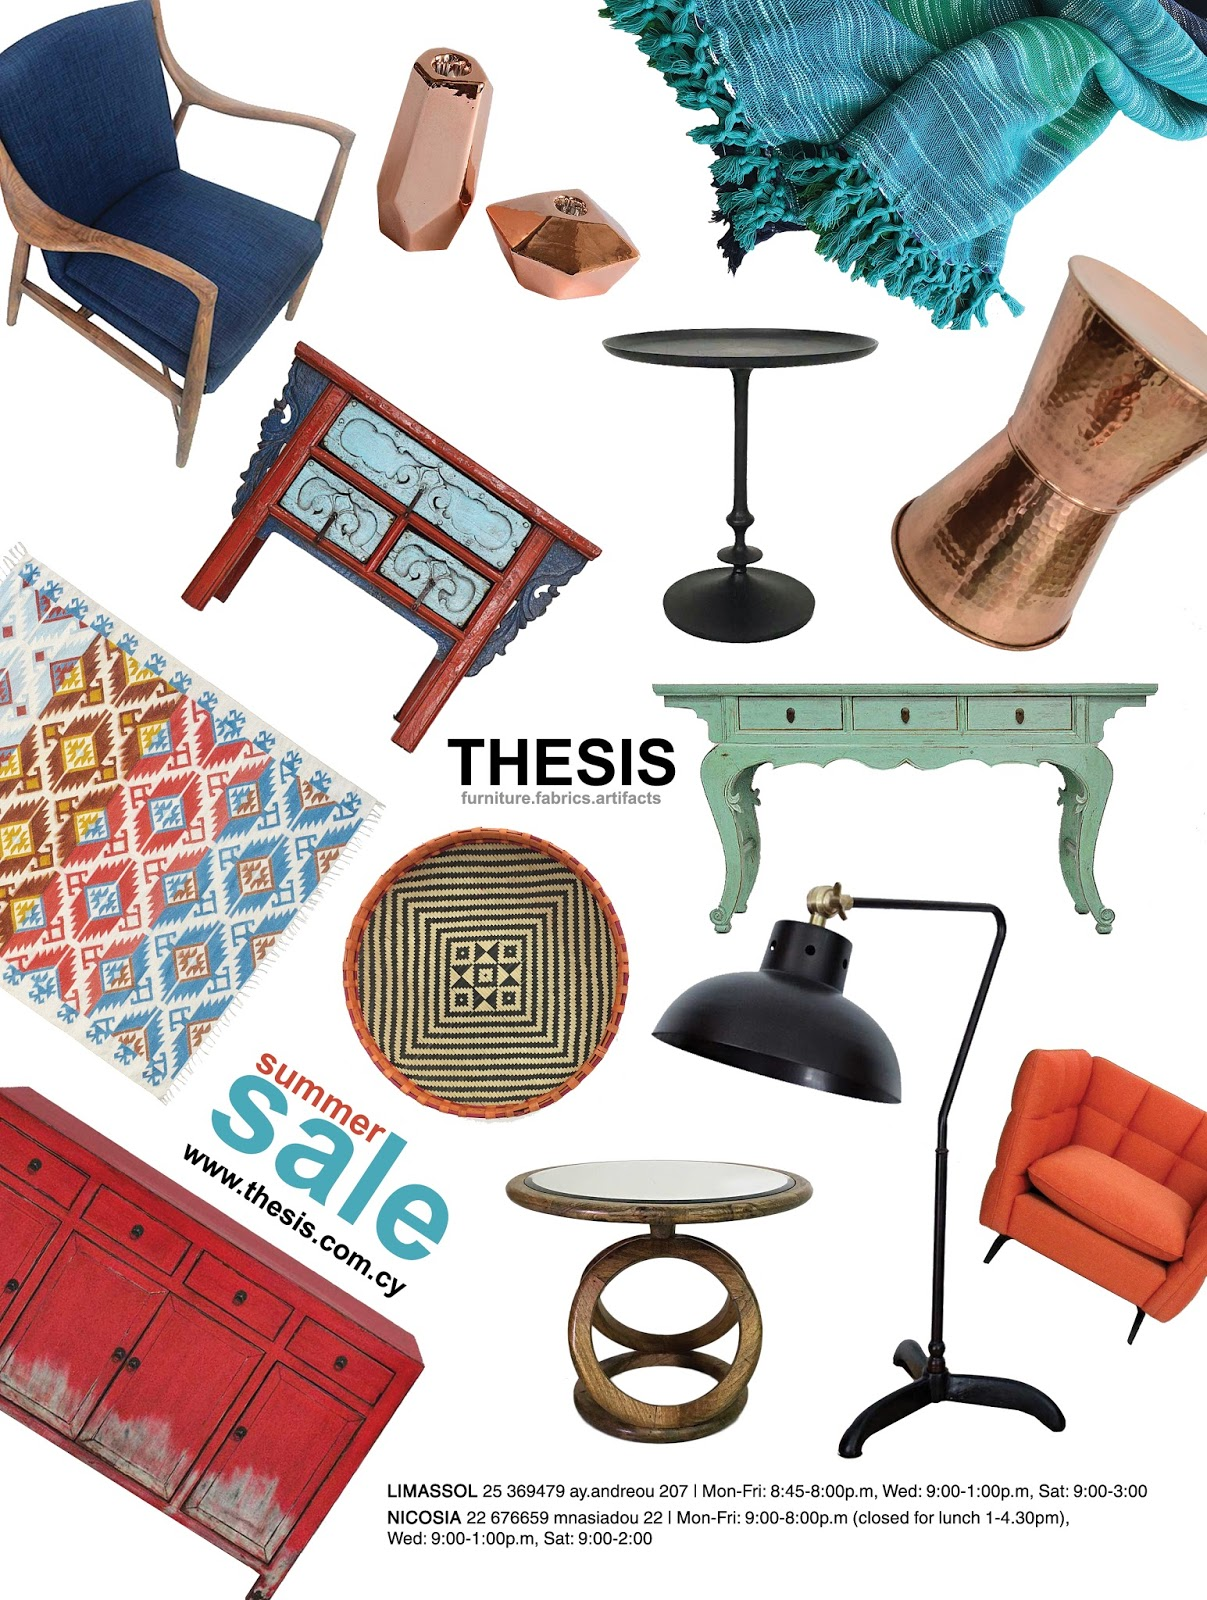 thesis furniture cyprus